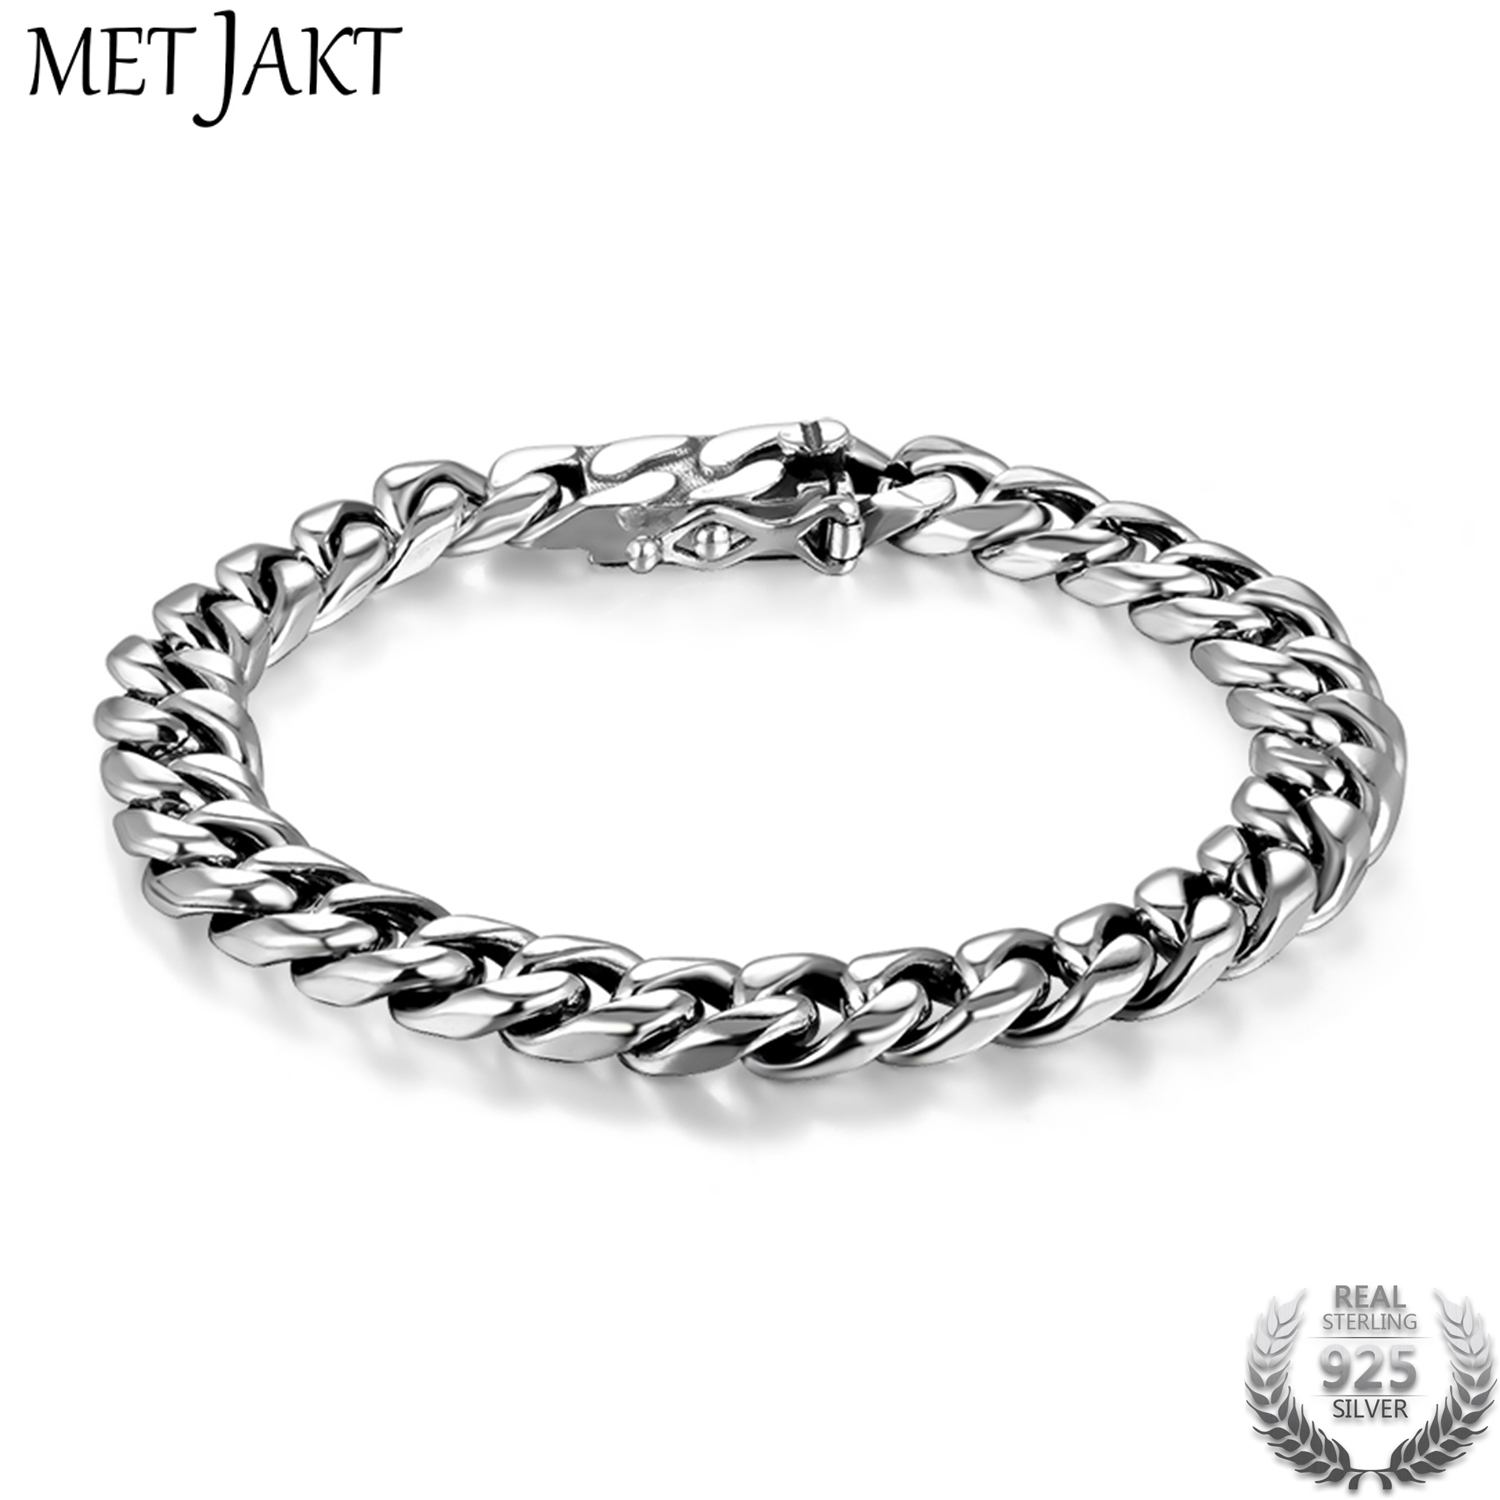 MetJakt Handmade Personalized Whip Chain Bracelet Solid 925 Sterling Silver Plug Bracelet for Unisex Jewelry 18cm